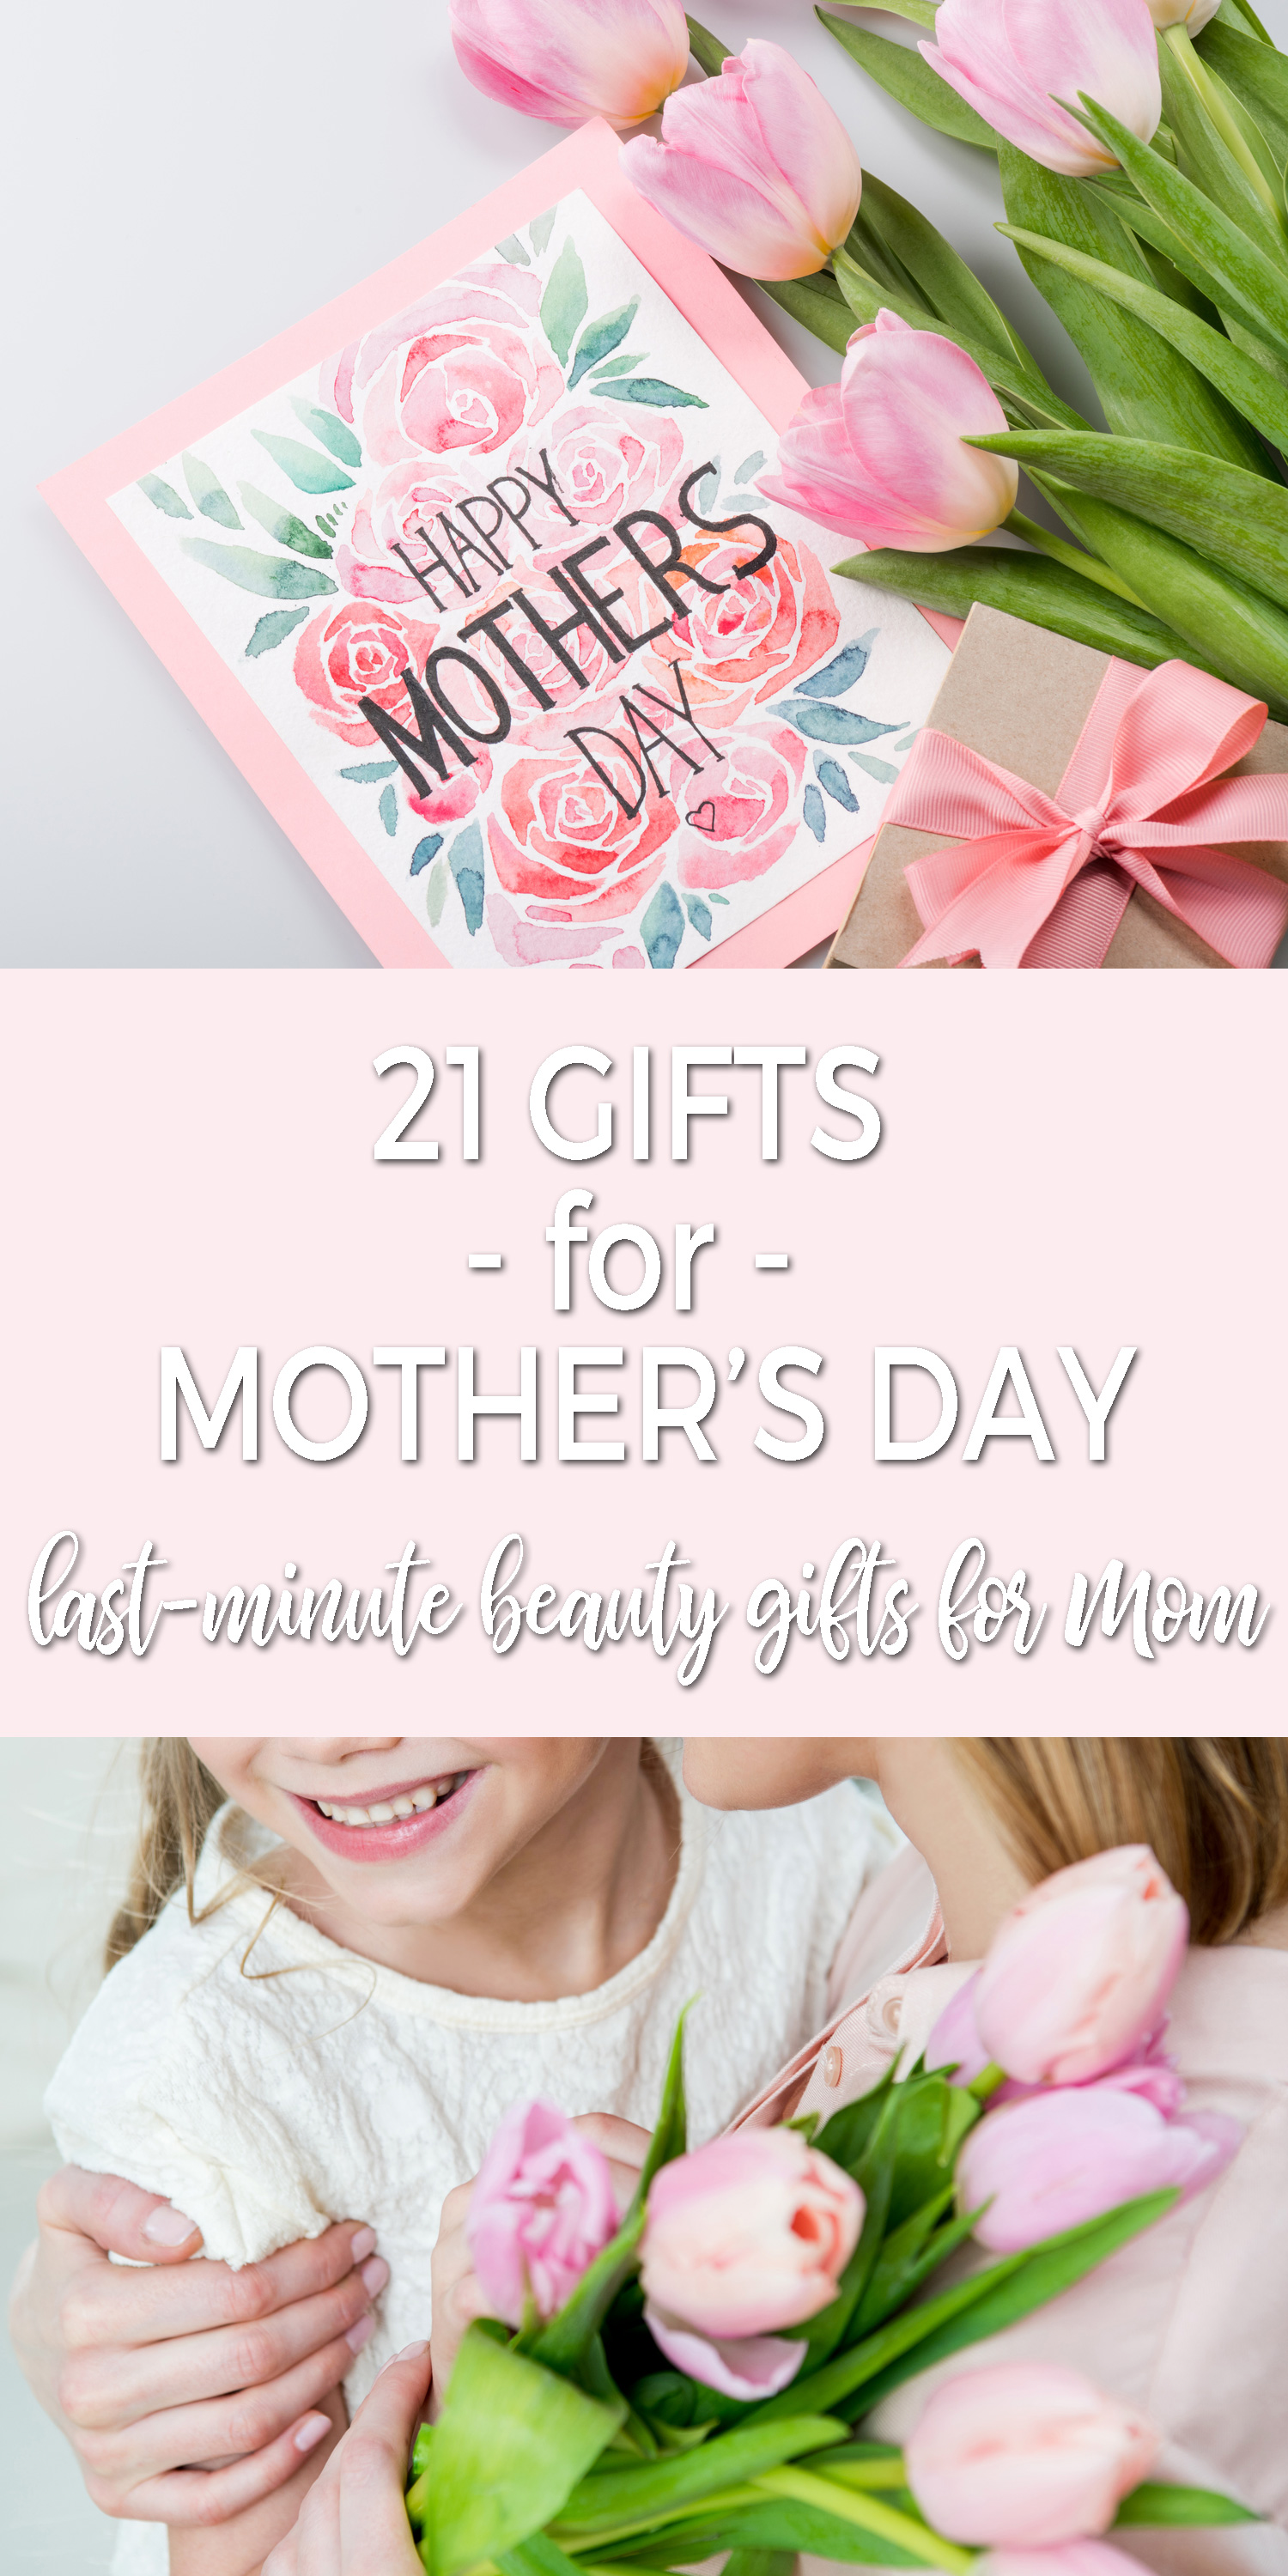 21 Last-Minute Beauty Gifts for Mother's Day